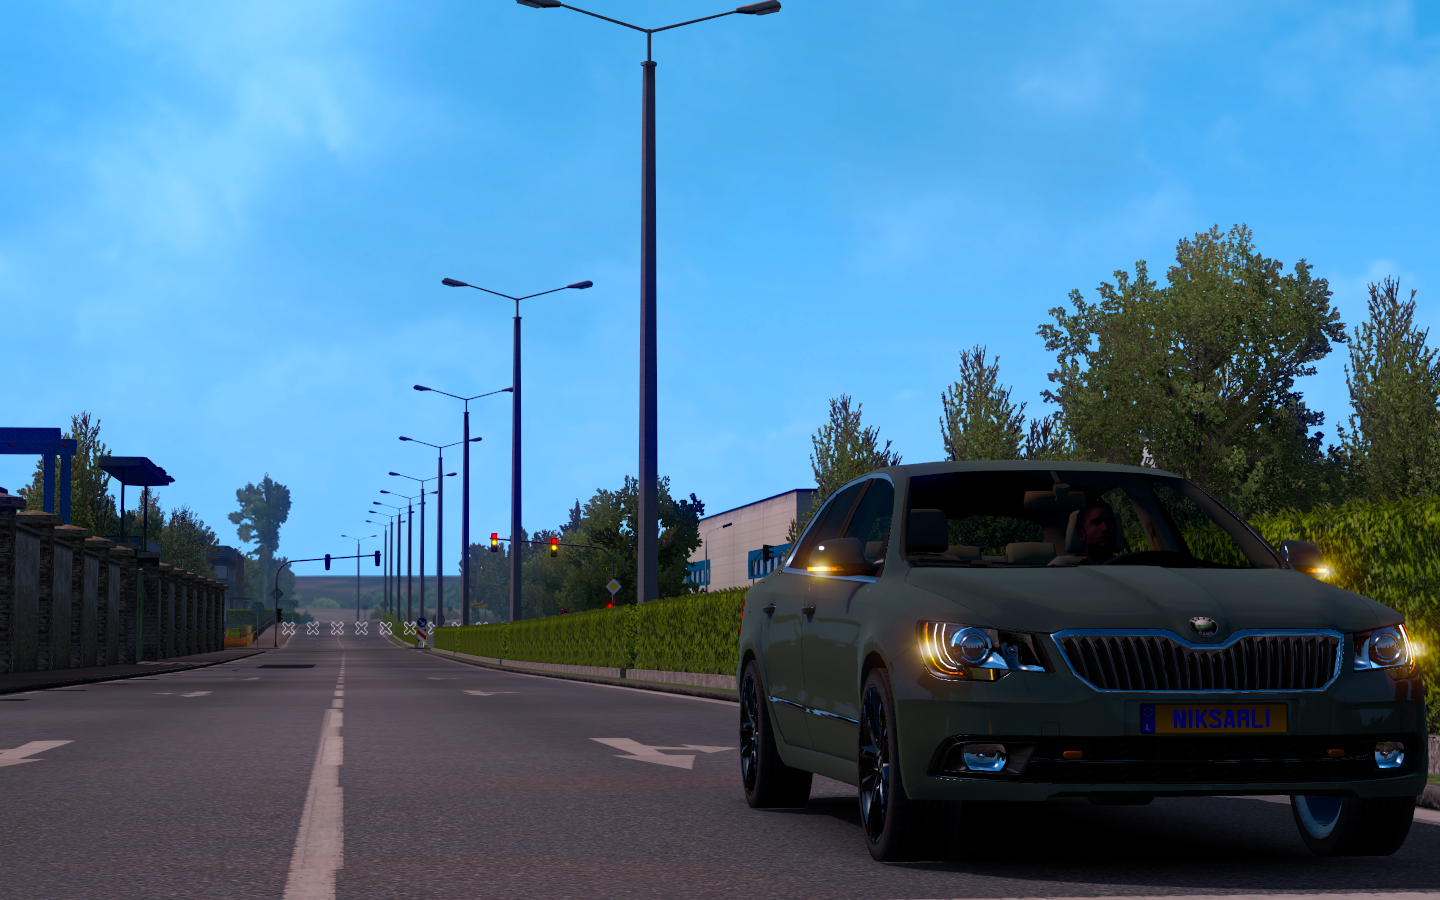 ets2_20190419_195100_00.png